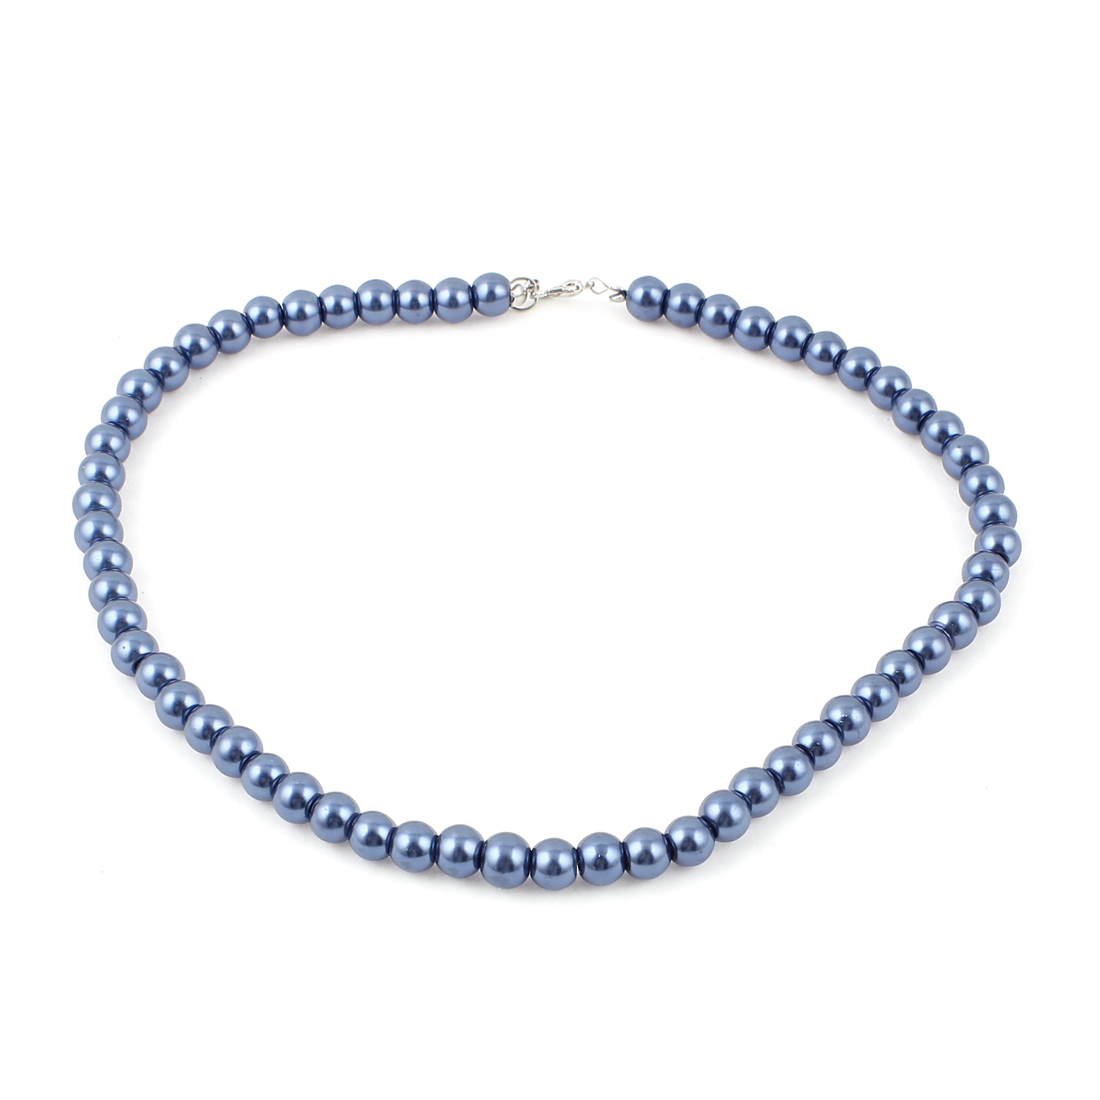 Single Strand Metal Clasp Costume Jewlery Imitation Pearl Necklace Dark Blue